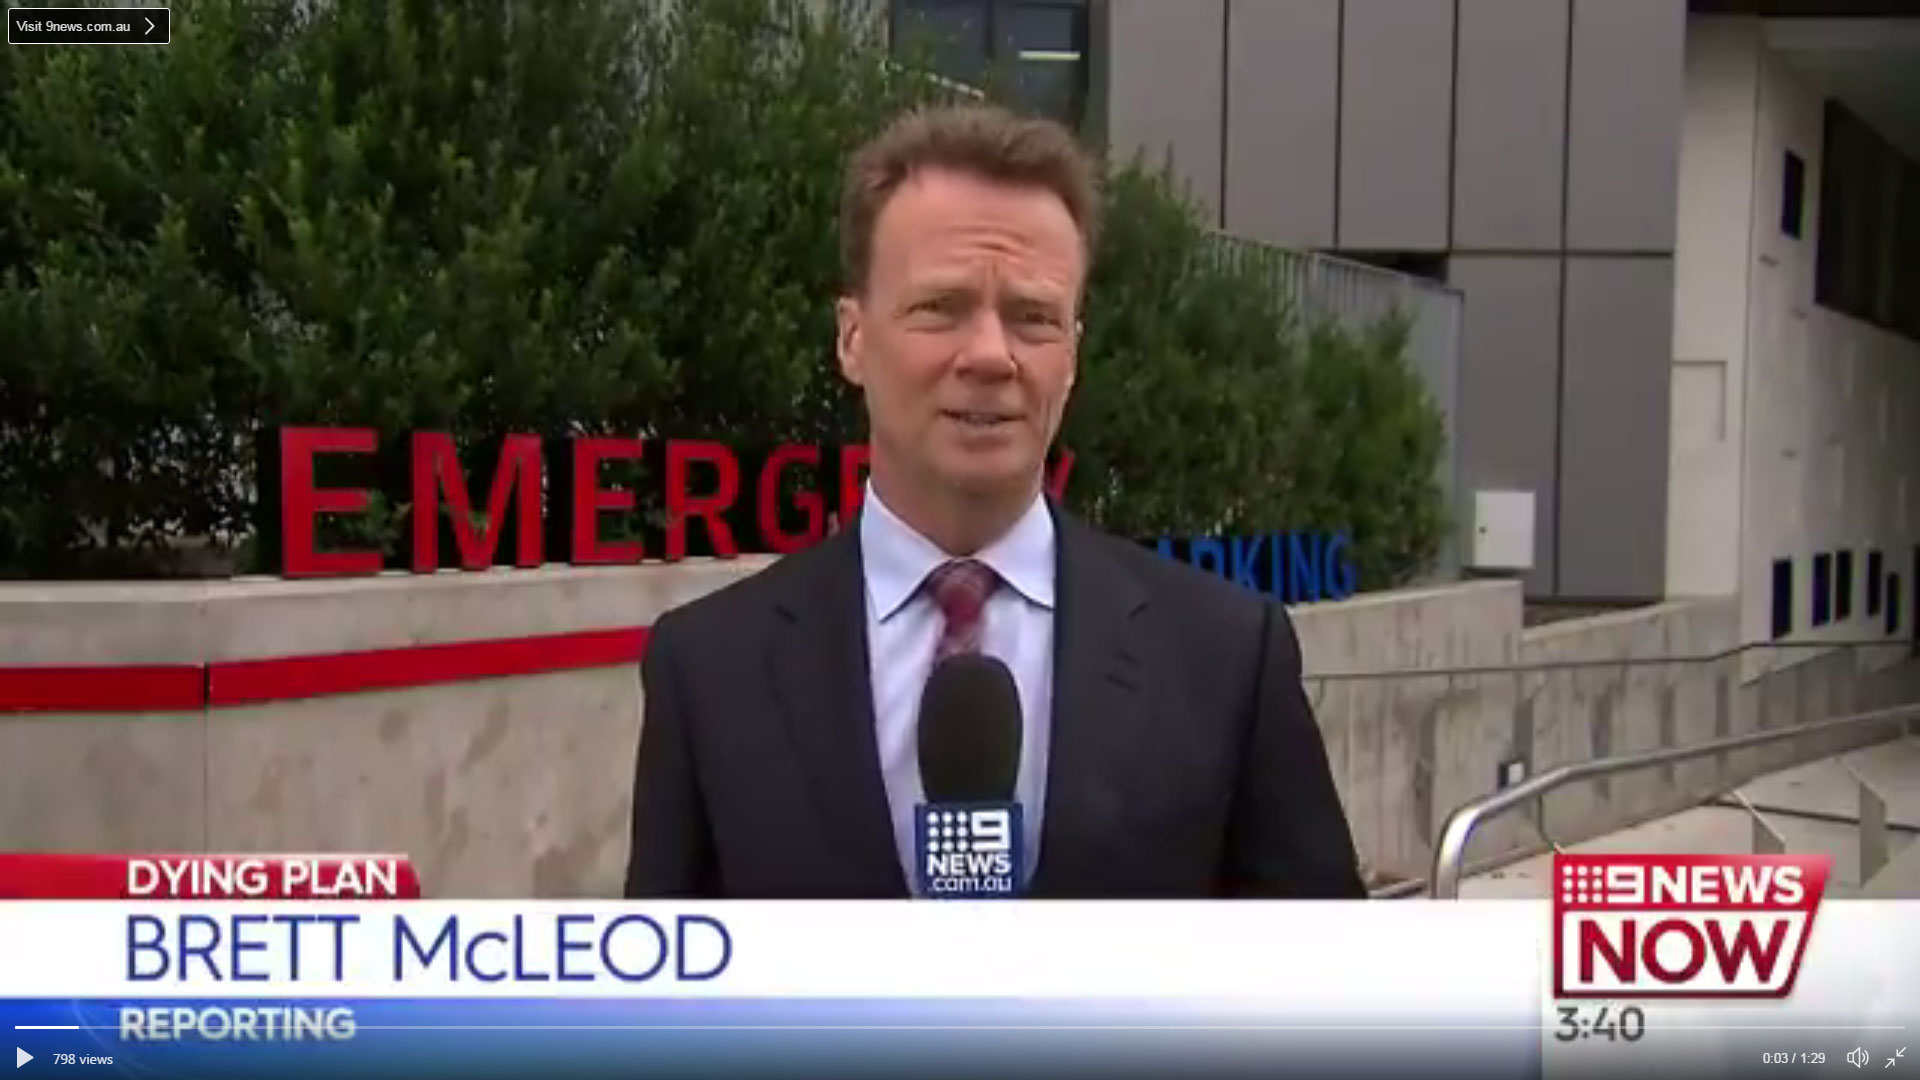 Brett Mcleod, a nine news reporter standing outside an emergency department.